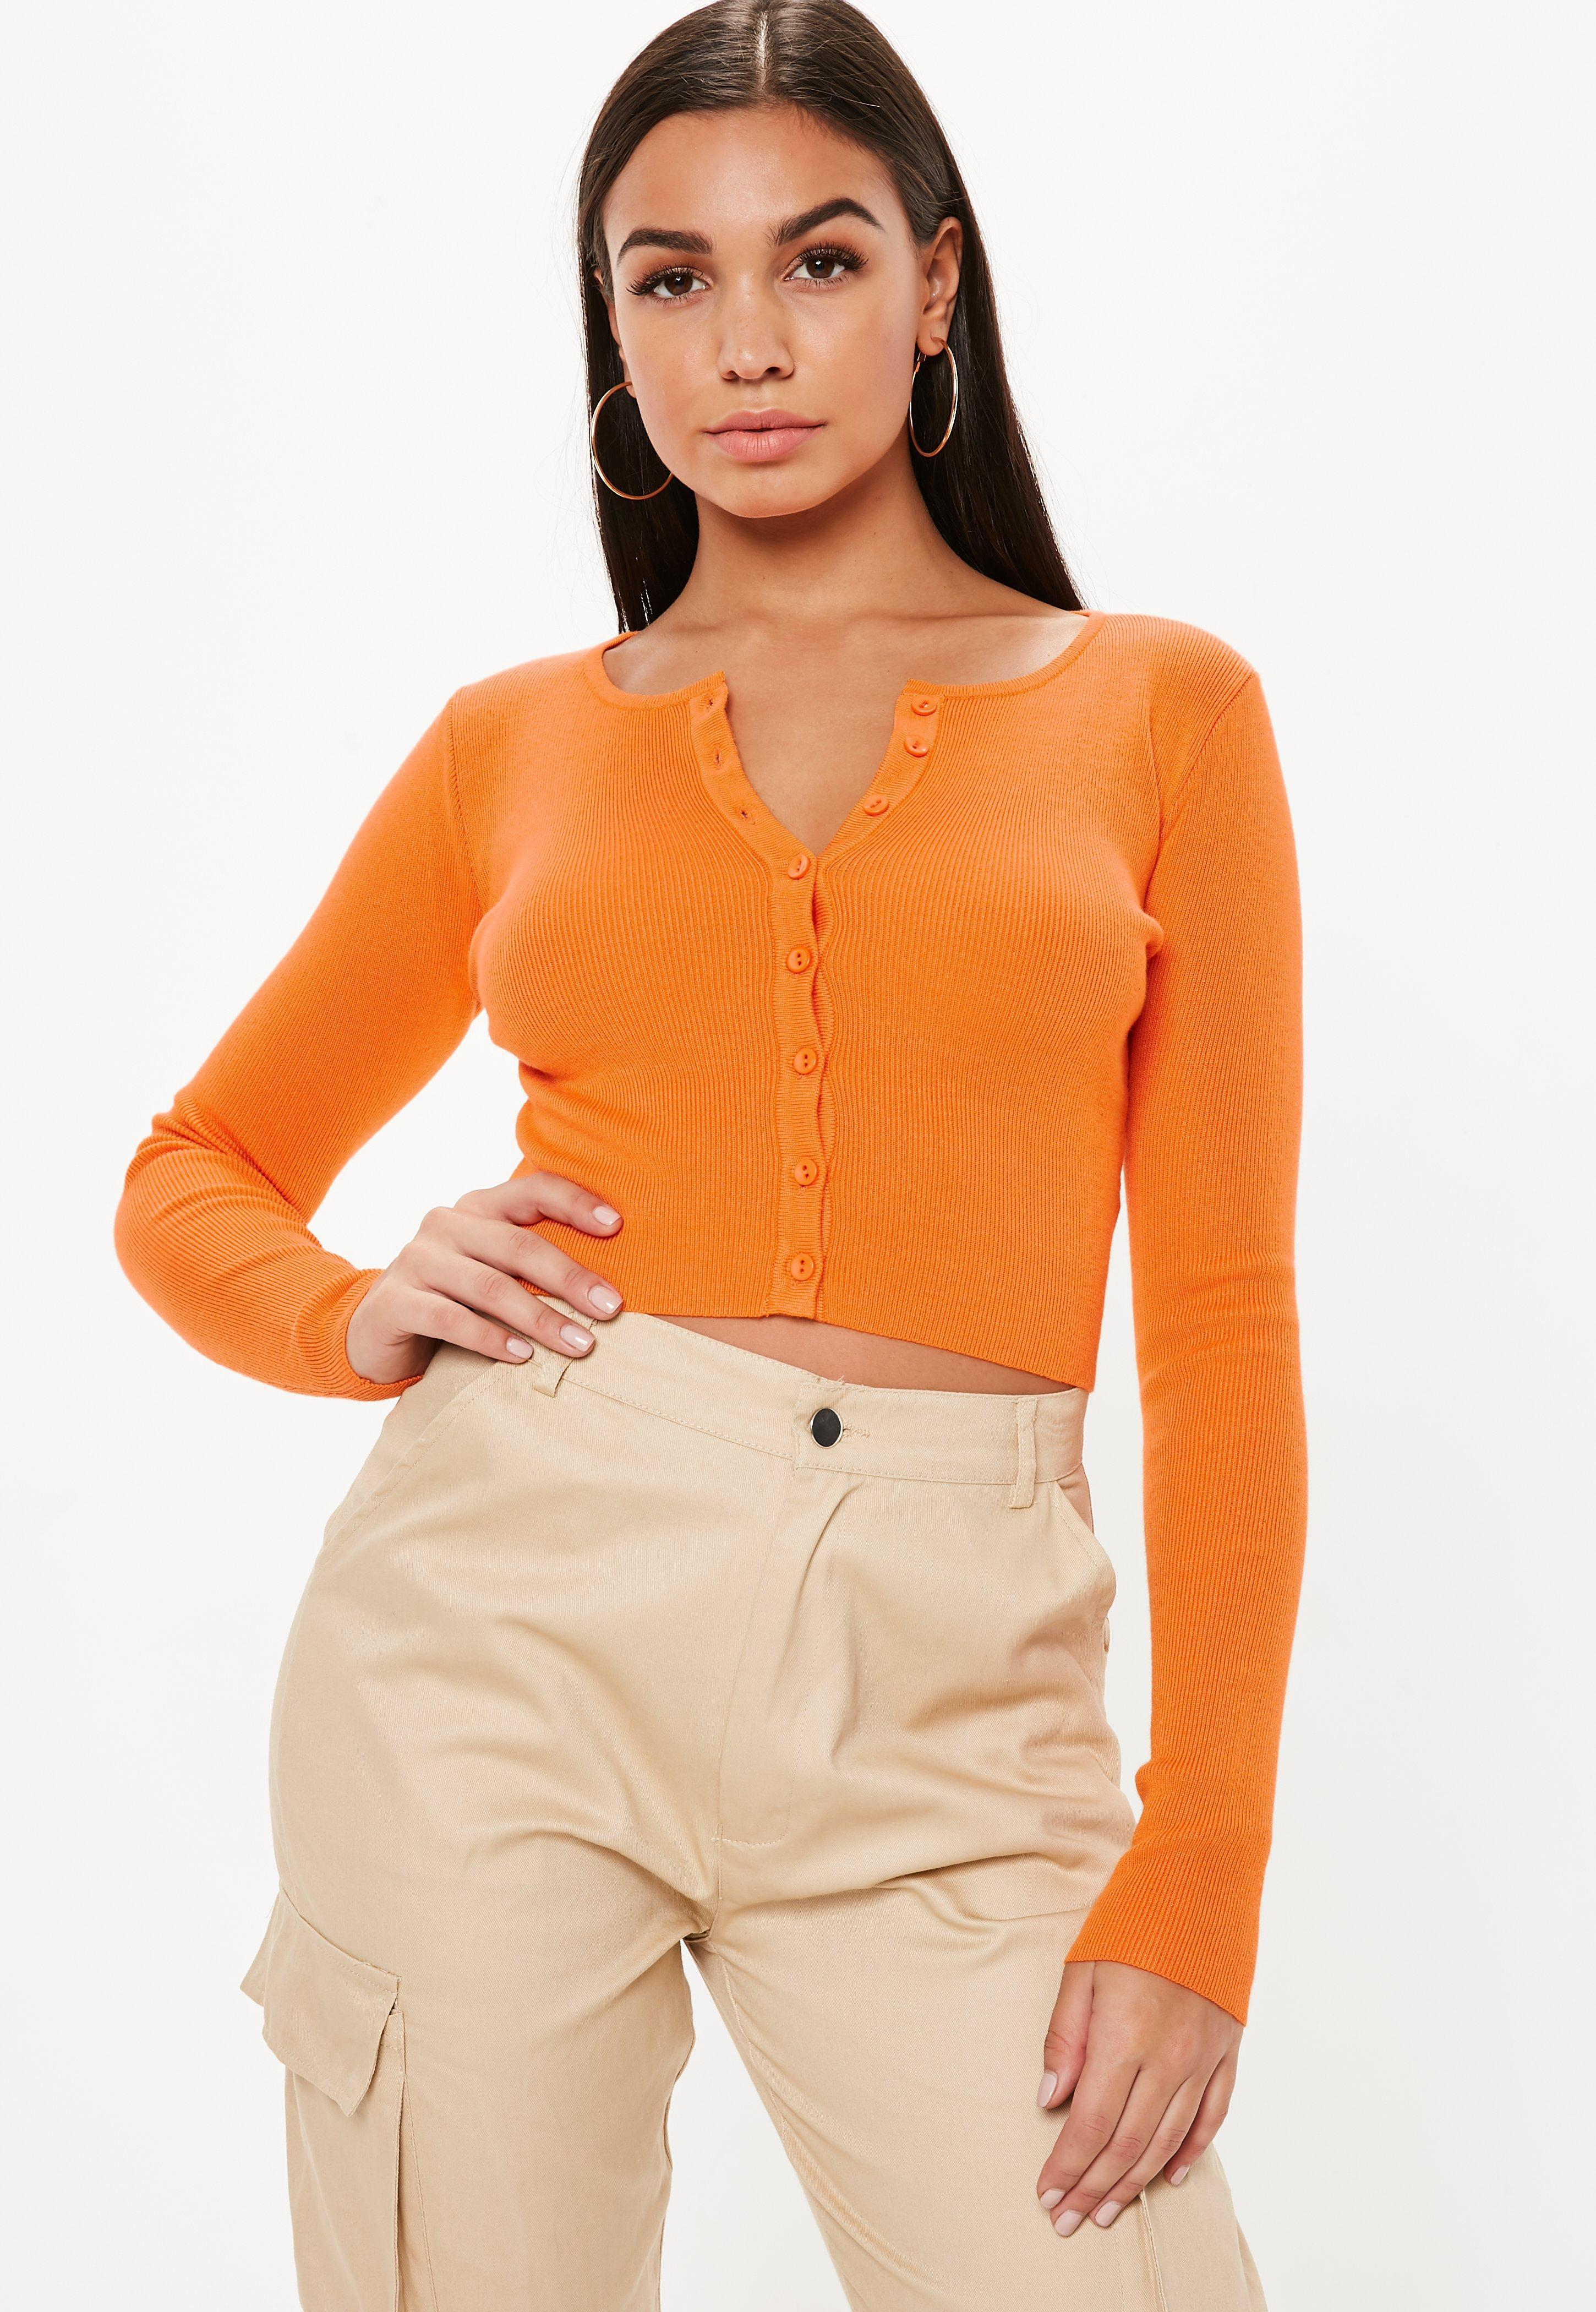 d89803882a3fd0 Lyst - Missguided Orange Long Sleeve Knitted Top in Orange